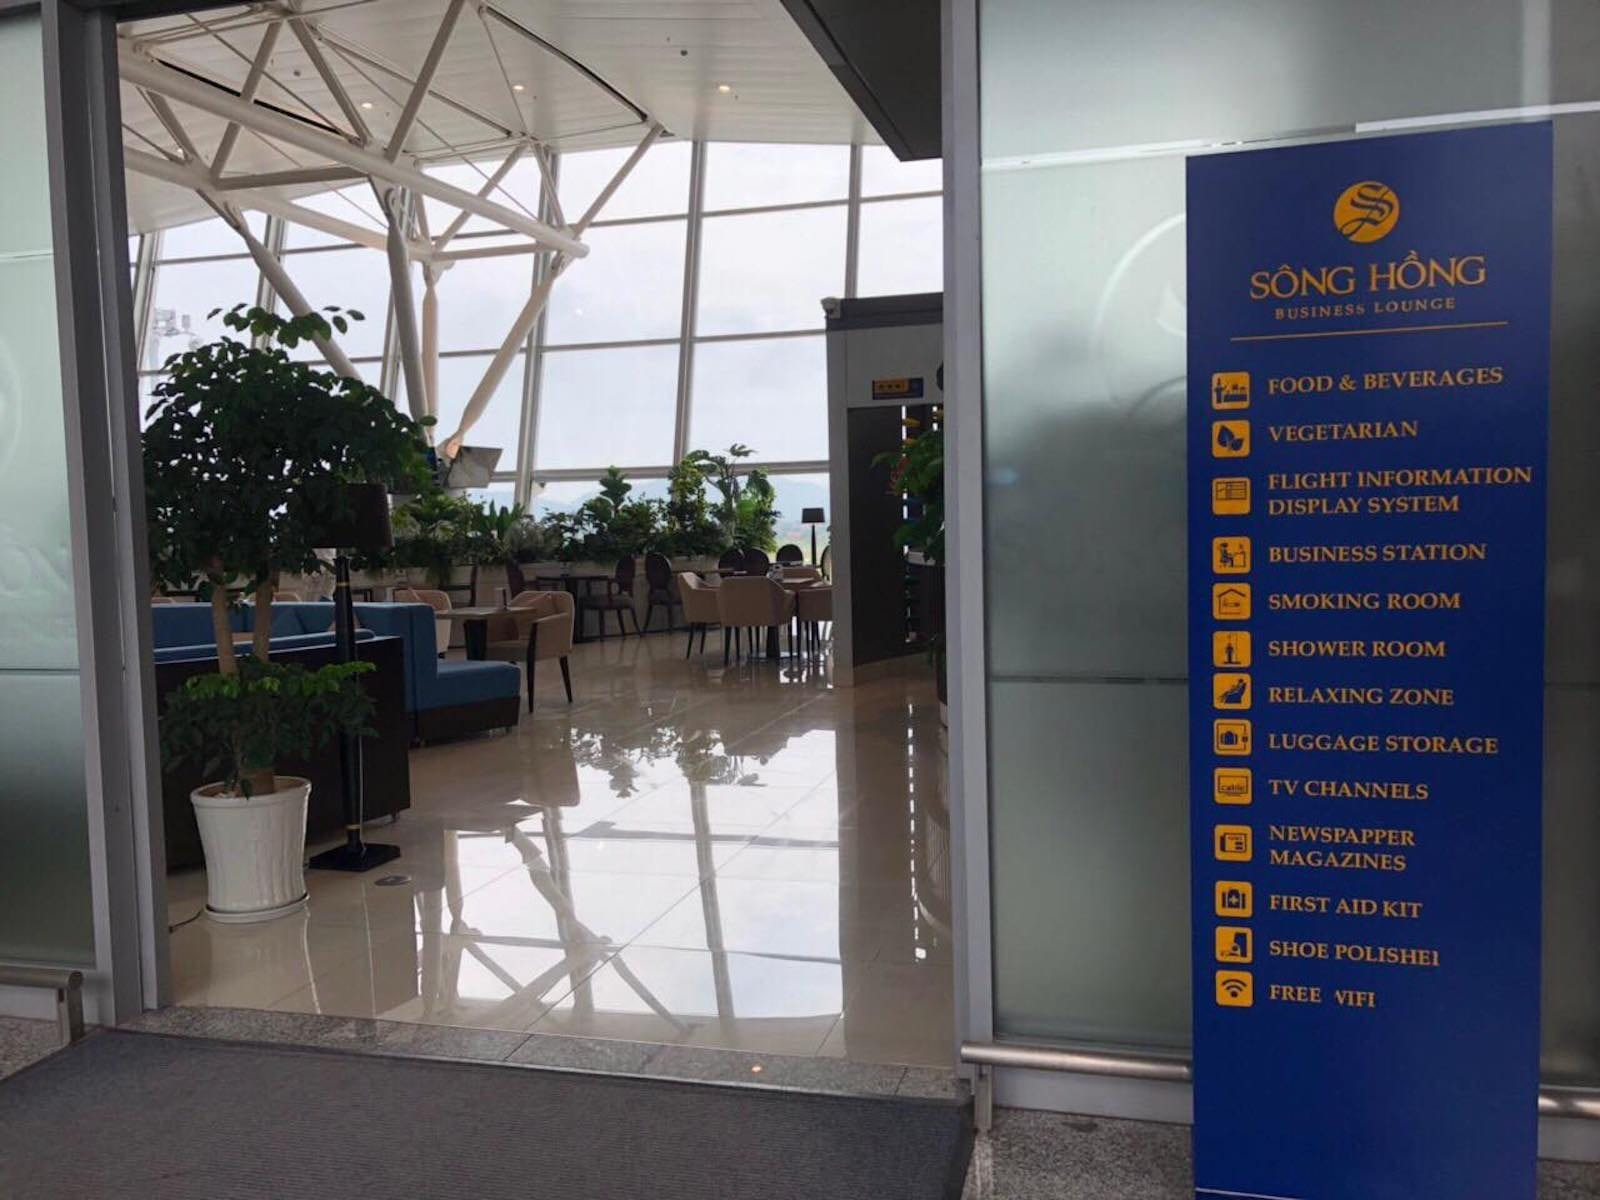 Entrance to Sông Hồng Business Lounge, Noi Bai International Airport